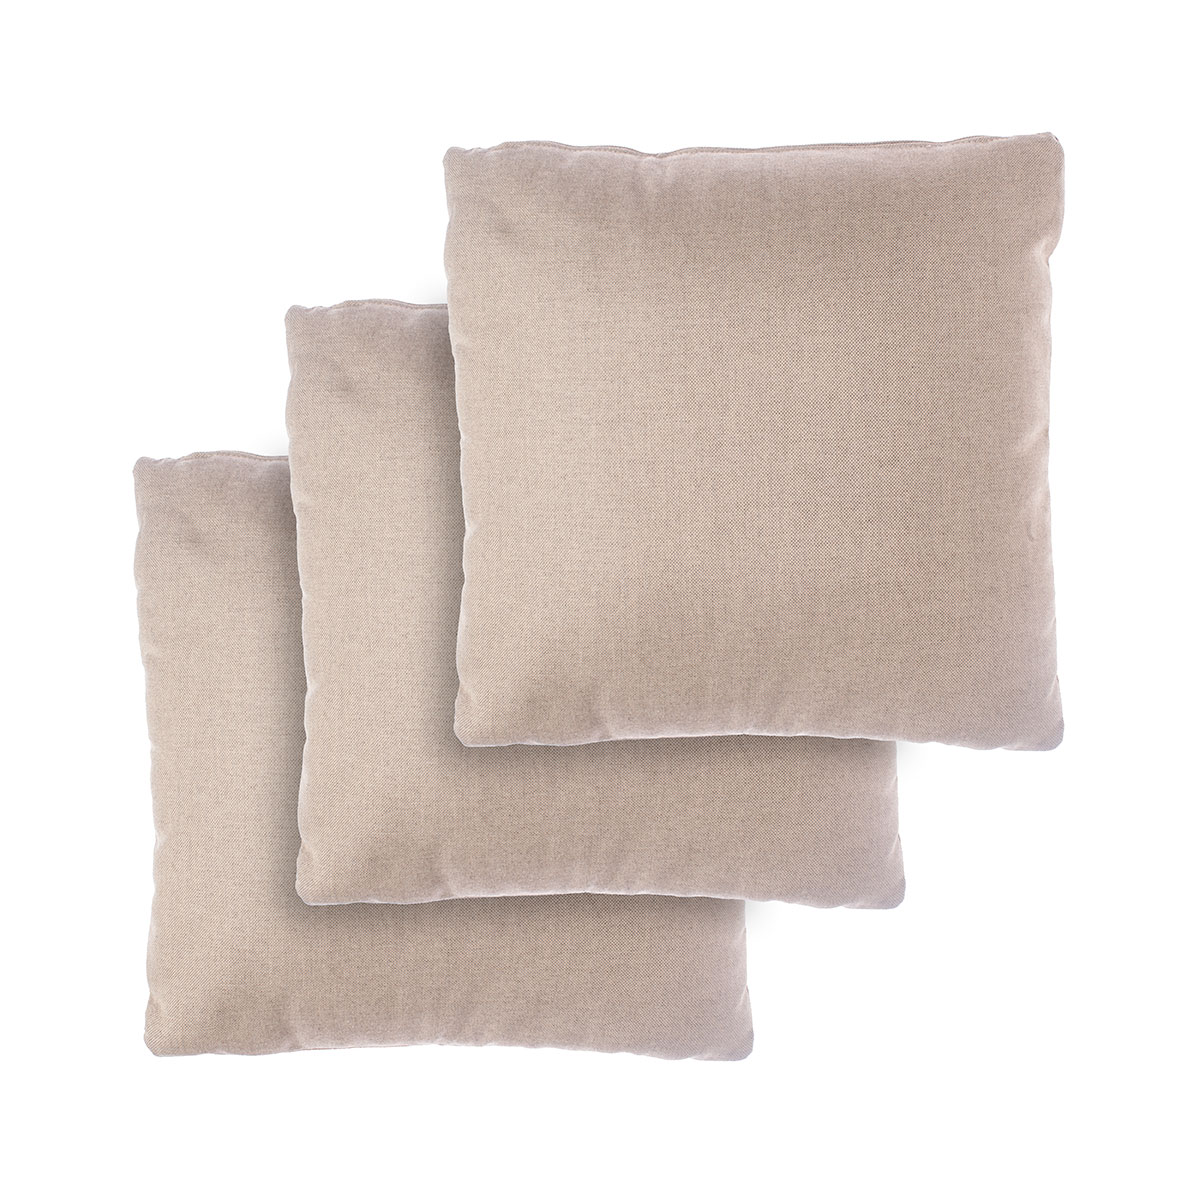 Set of 3 small pillows for 3-seater sofa Zoe Braid